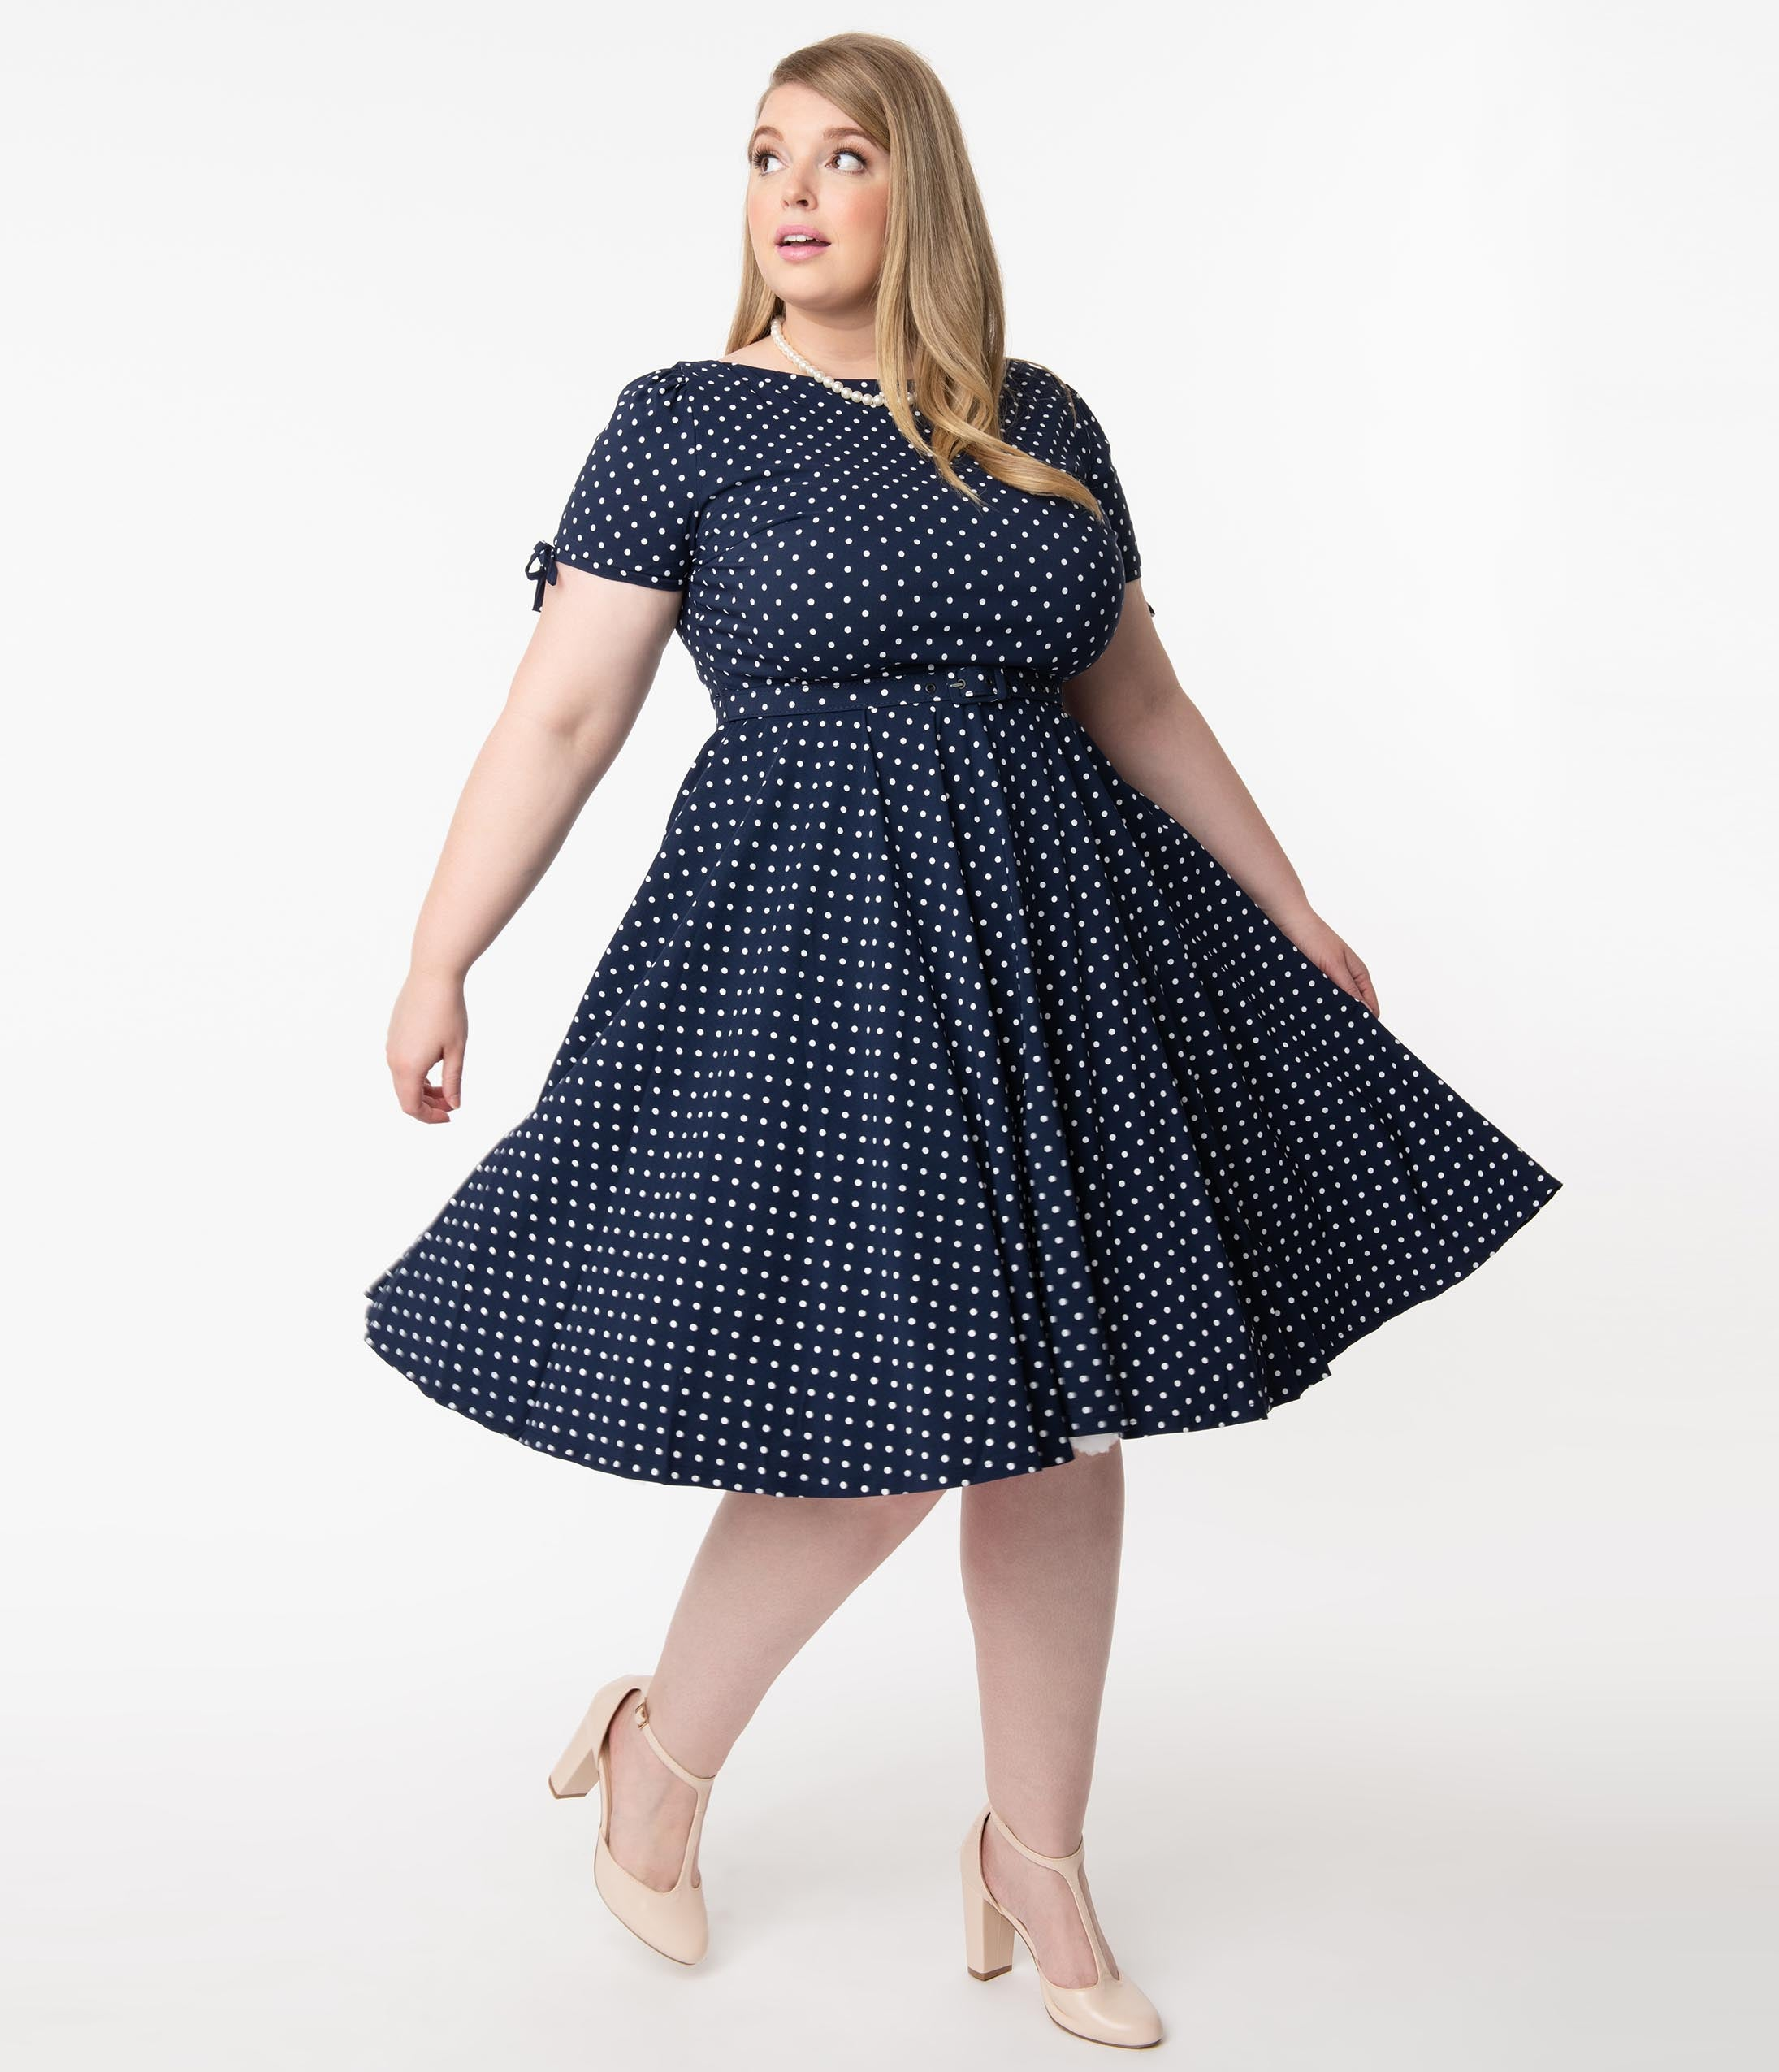 1950s Plus Size Fashion & Clothing History Unique Vintage Plus Size Navy  White Pin Dot Sasha Swing Dress $82.00 AT vintagedancer.com